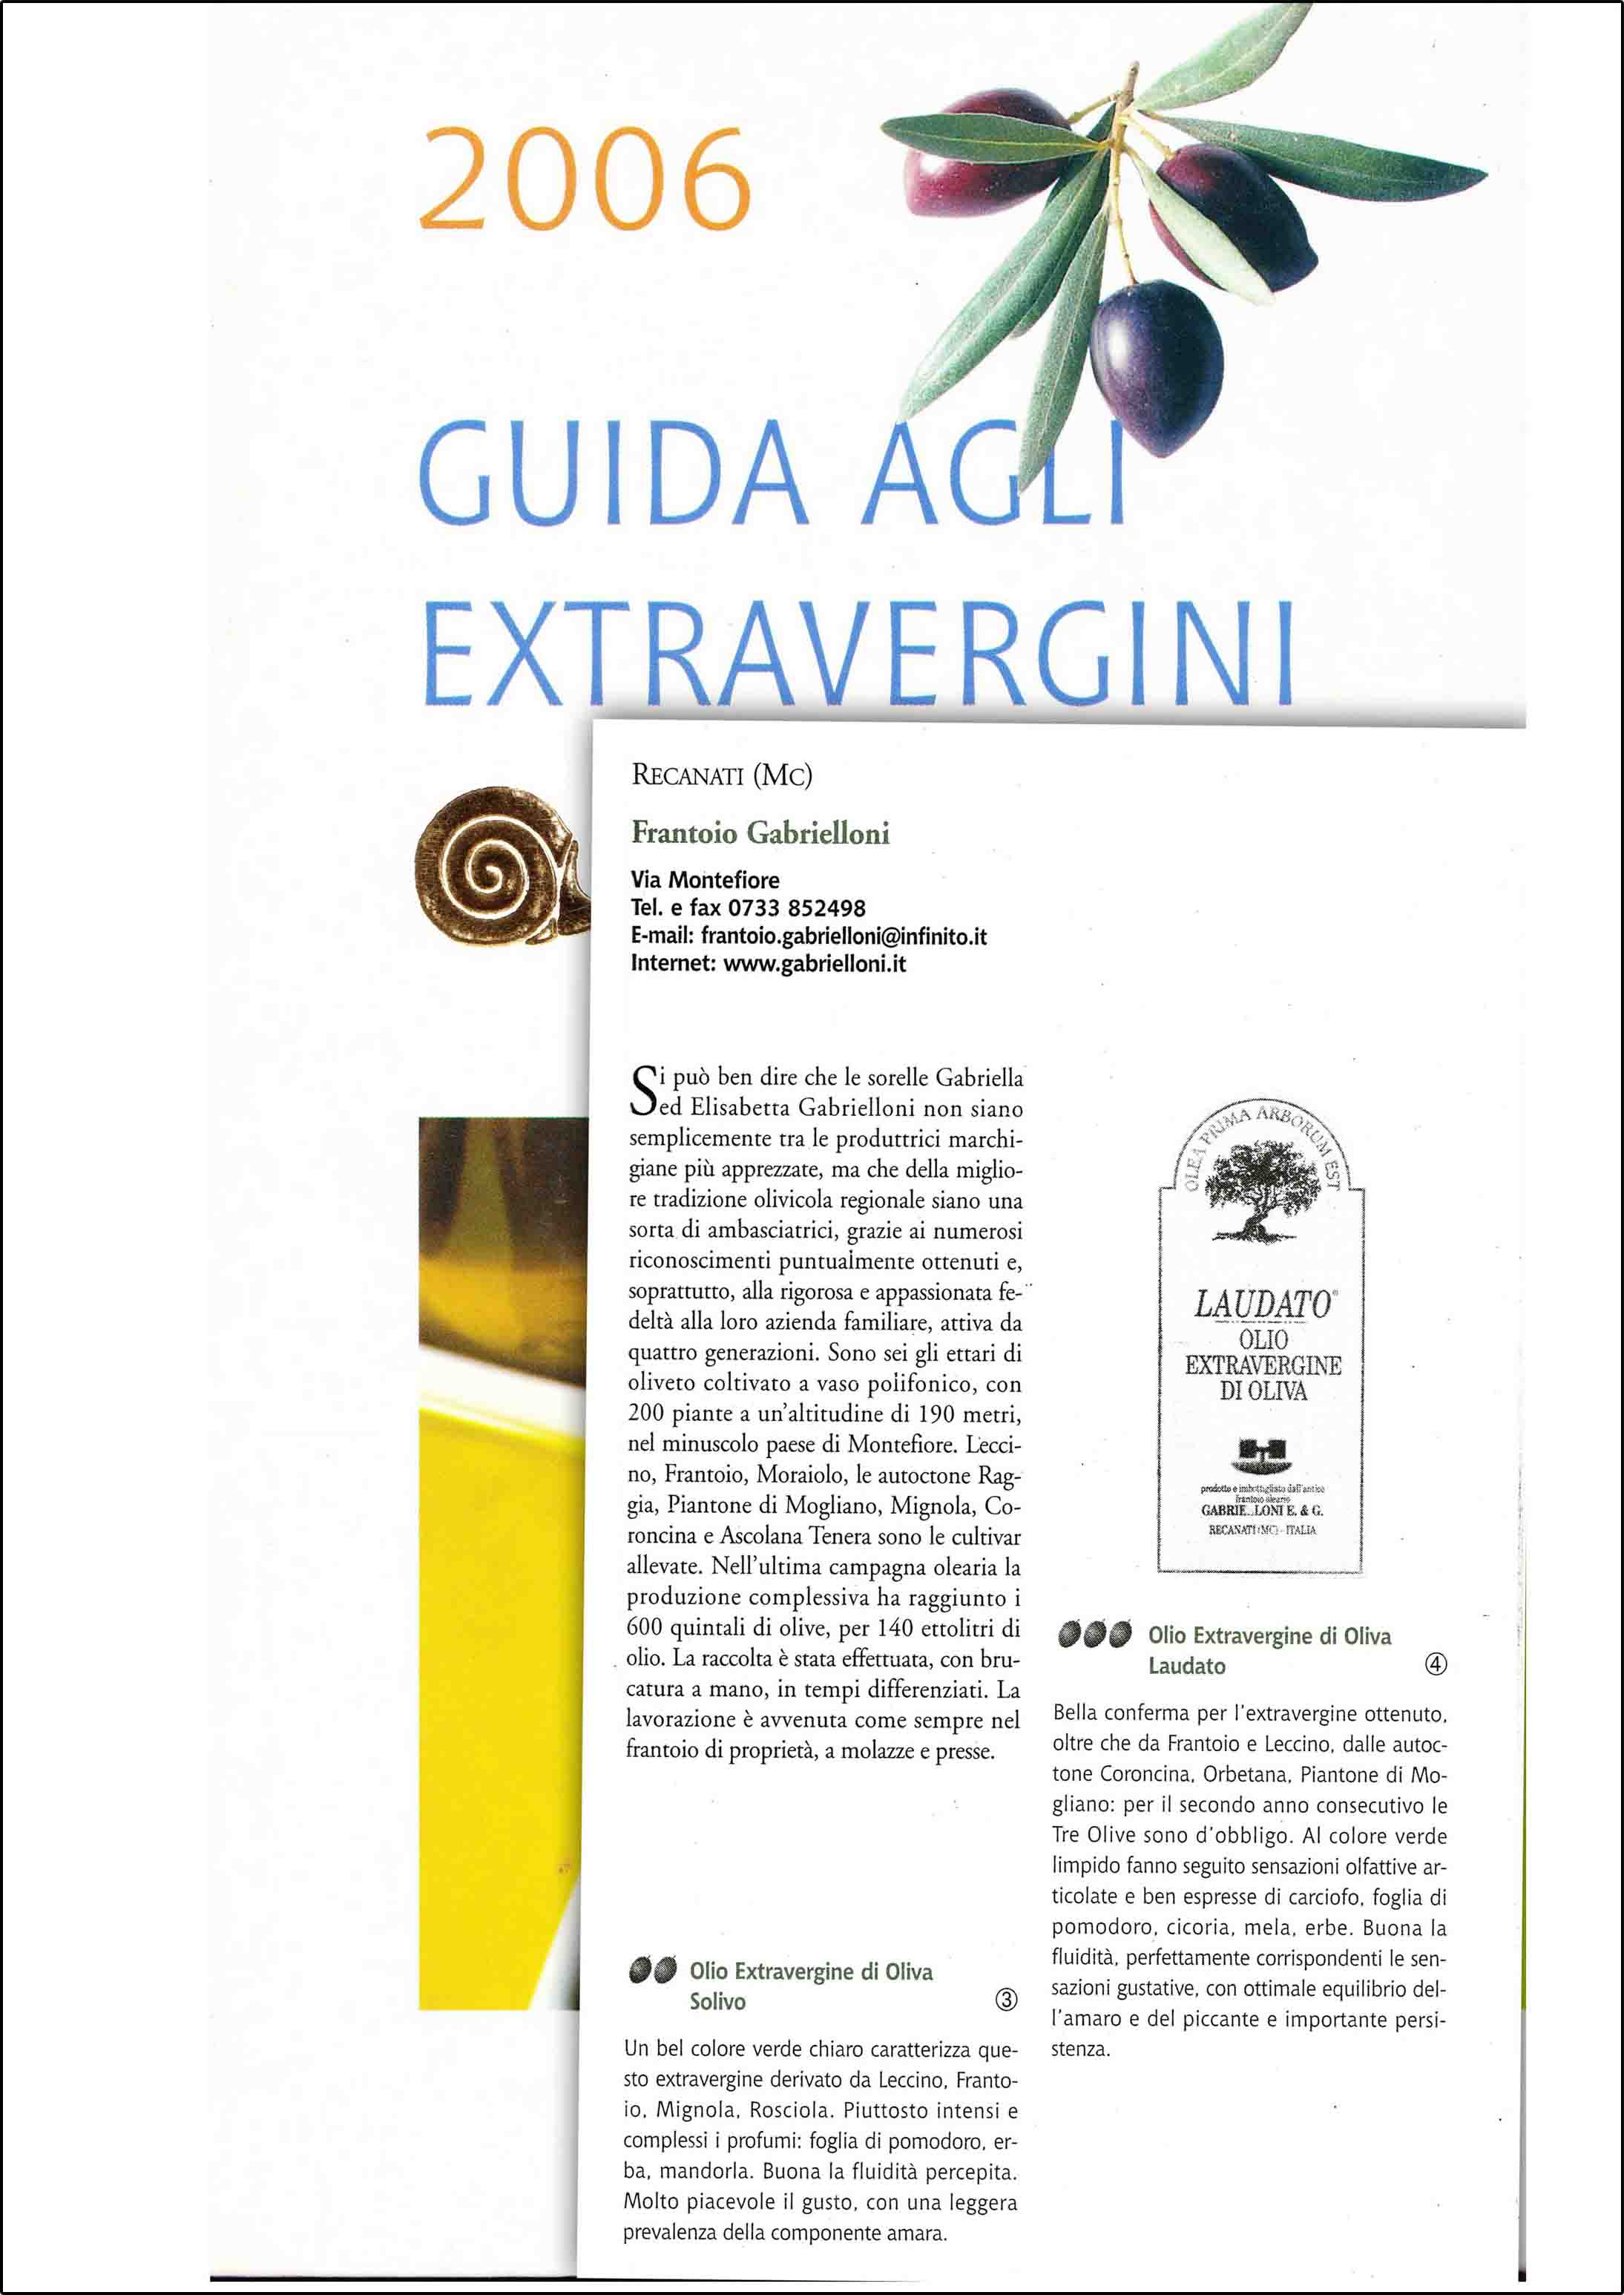 Slow Food Guide to Extra Virgin Olive Oils 2006